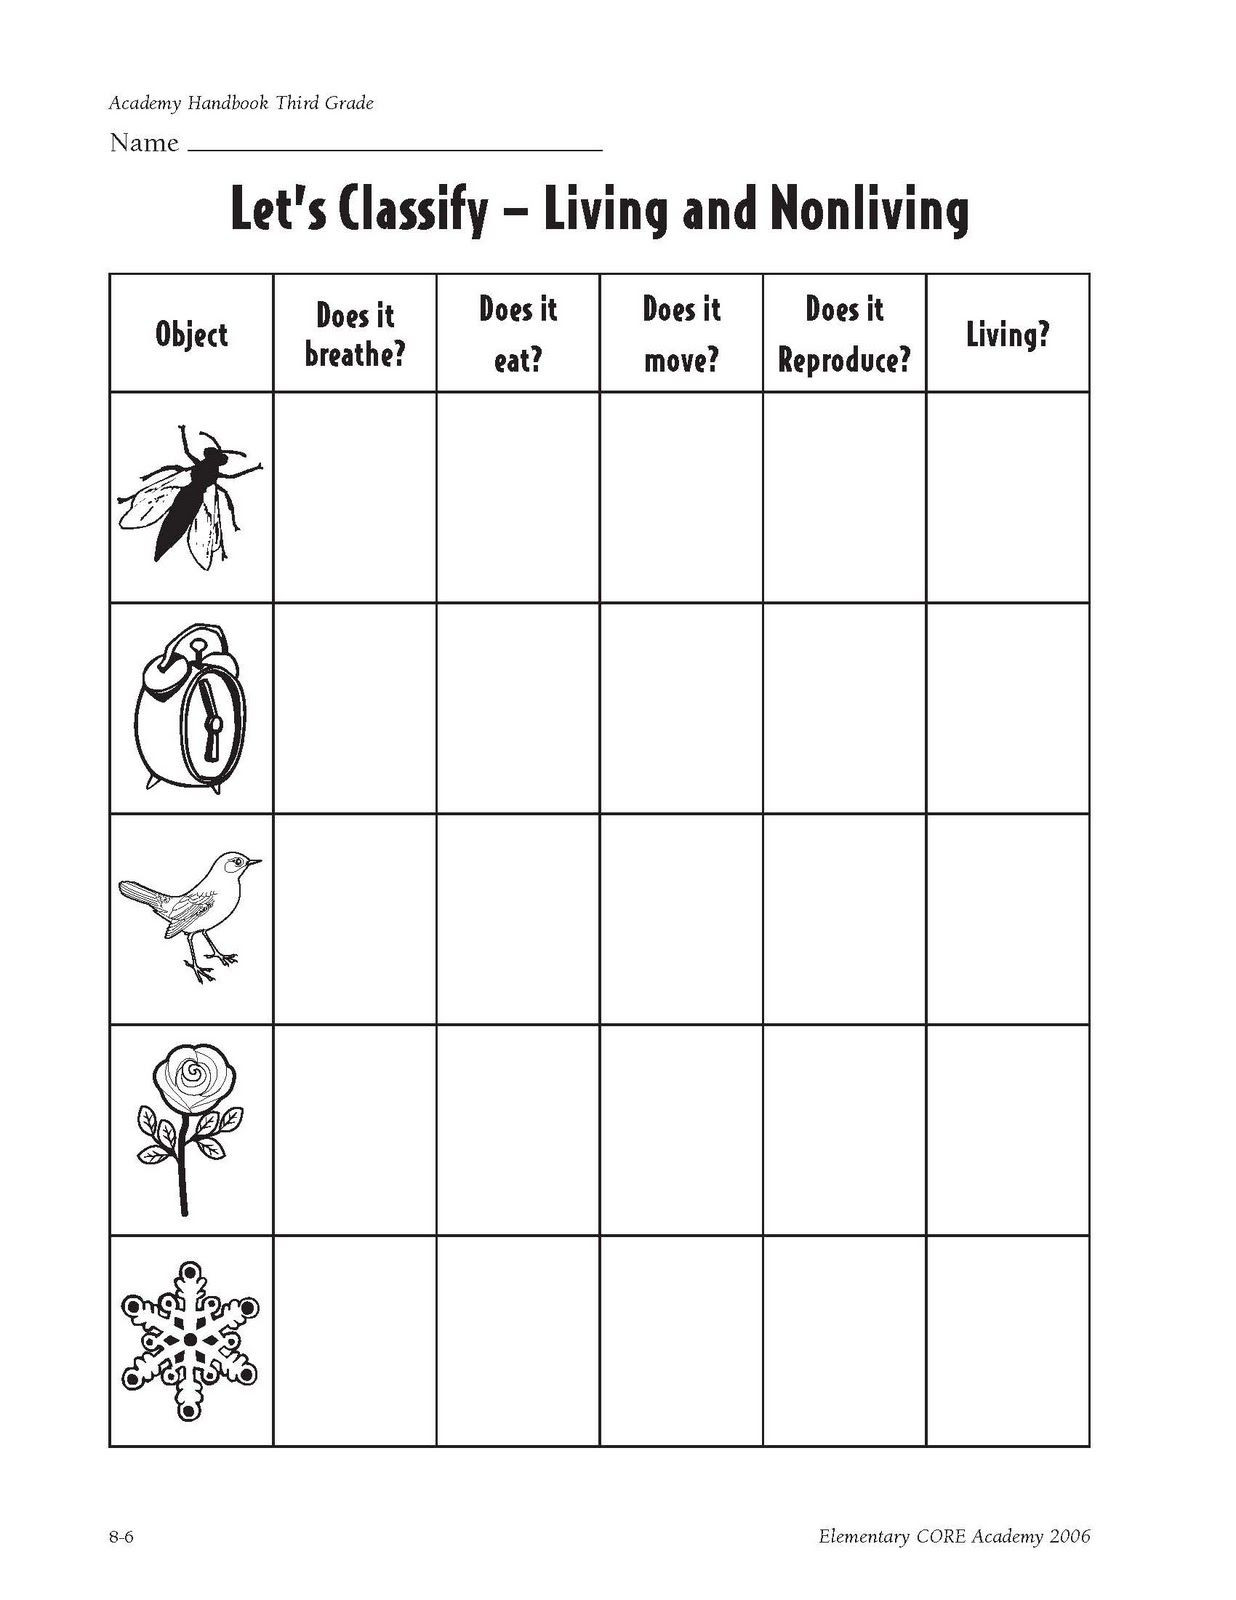 Energy Worksheets for 2nd Grade Characteristics Of Living Things Made Of Cells Obtain and